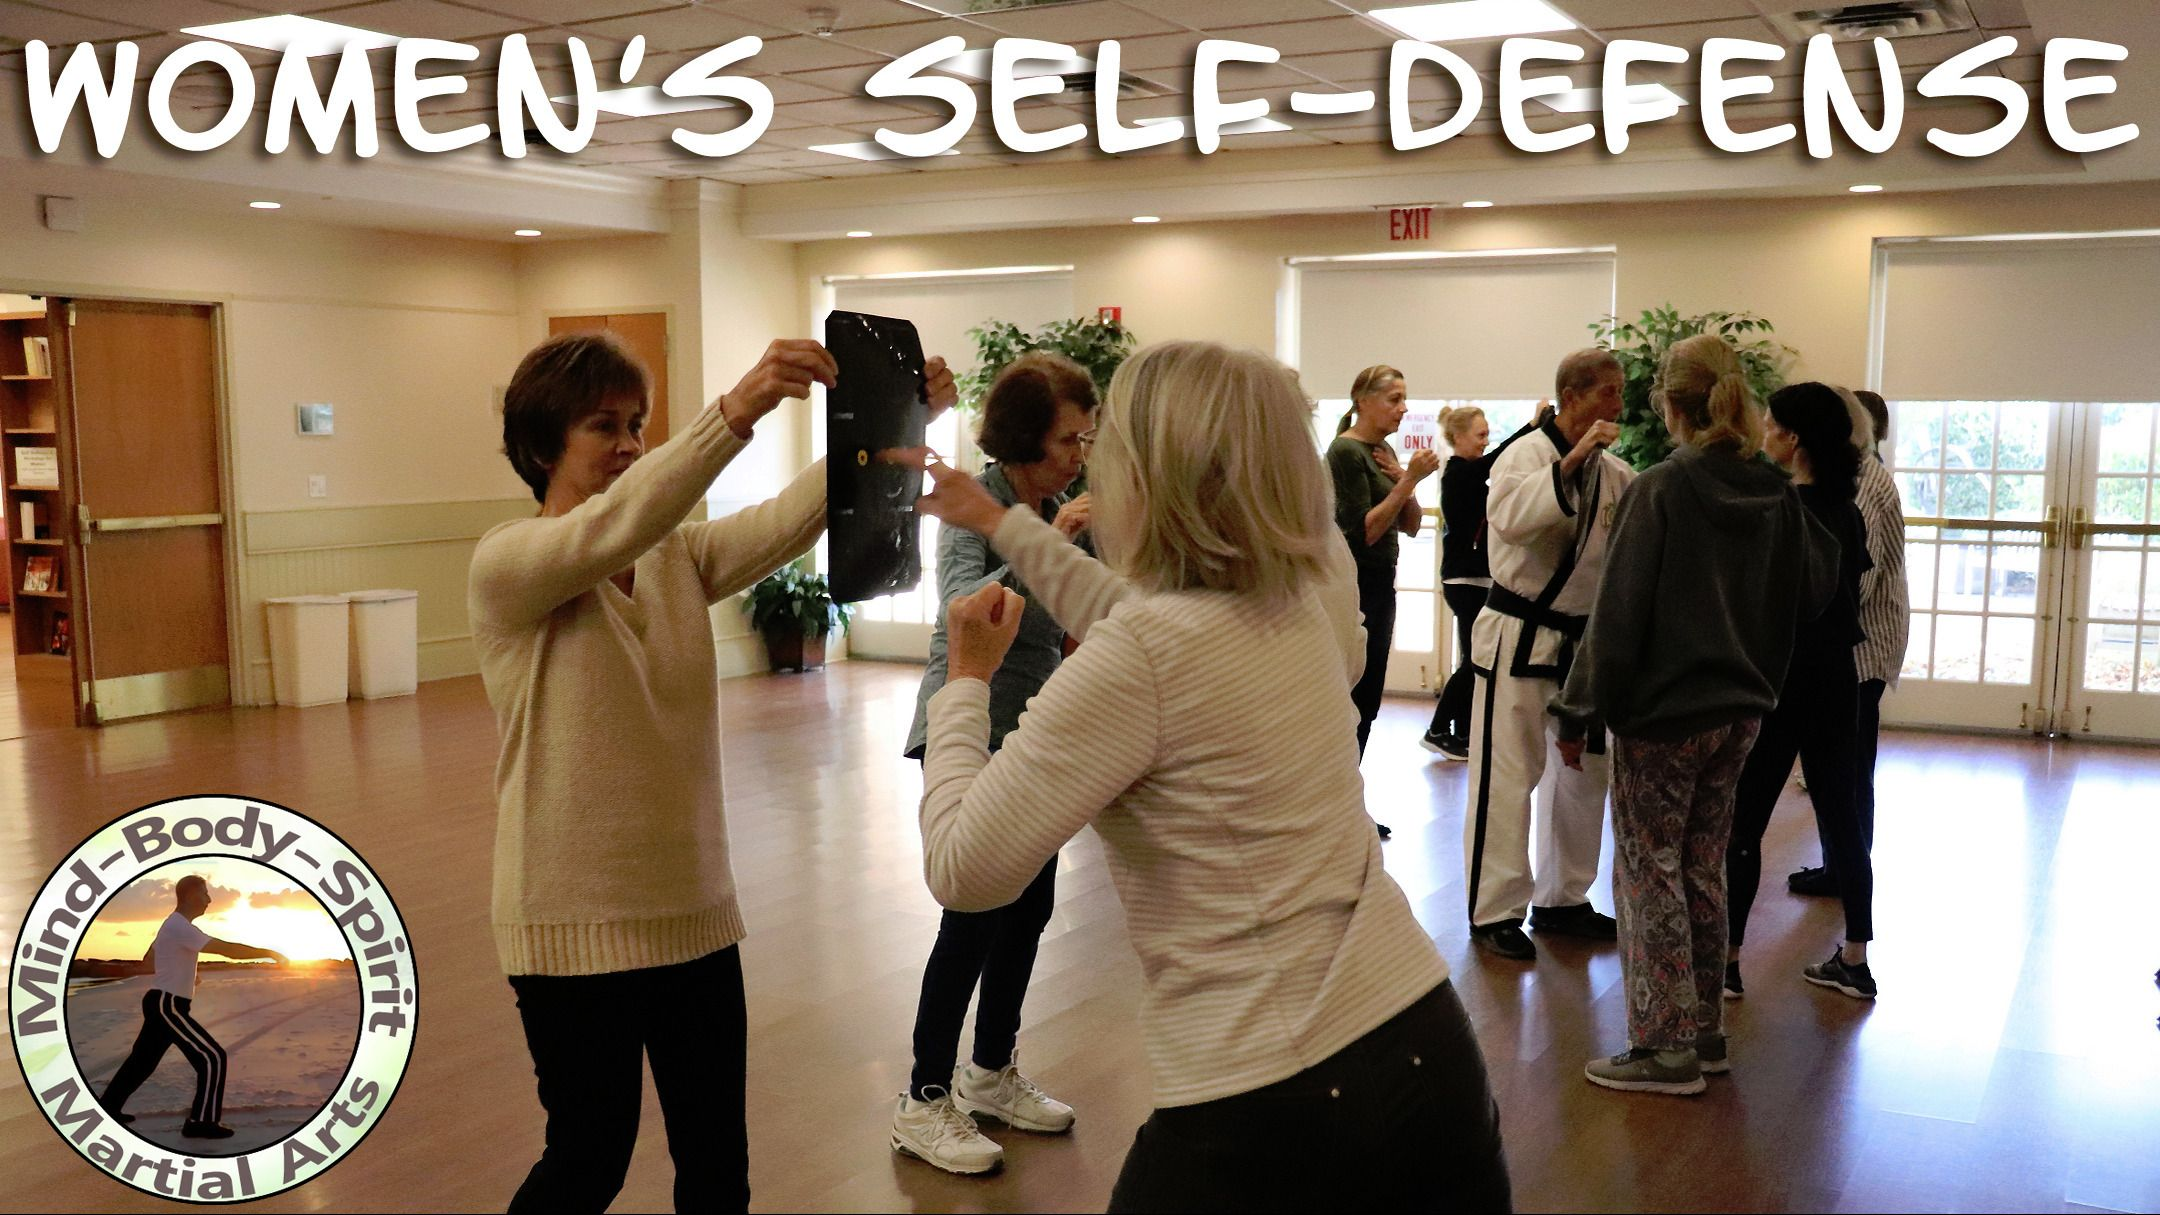 Women's Self-Defense Events (both free and paid)